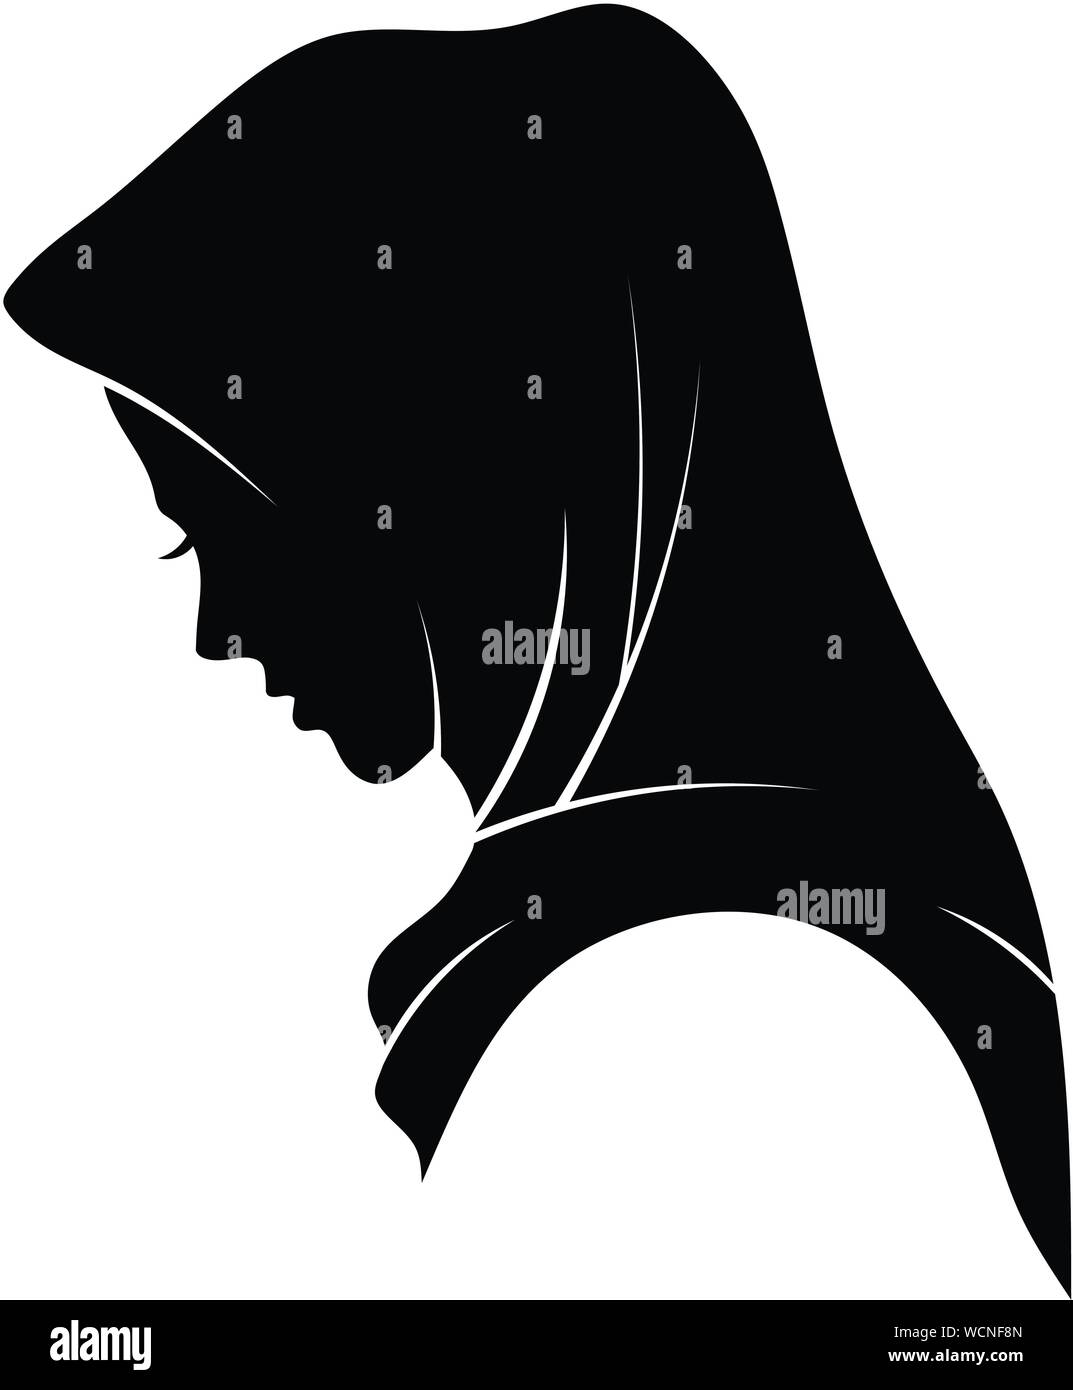 Hijab Silhouette Png : hijab, silhouette, Hijab, Vector, Resolution, Stock, Photography, Images, Alamy